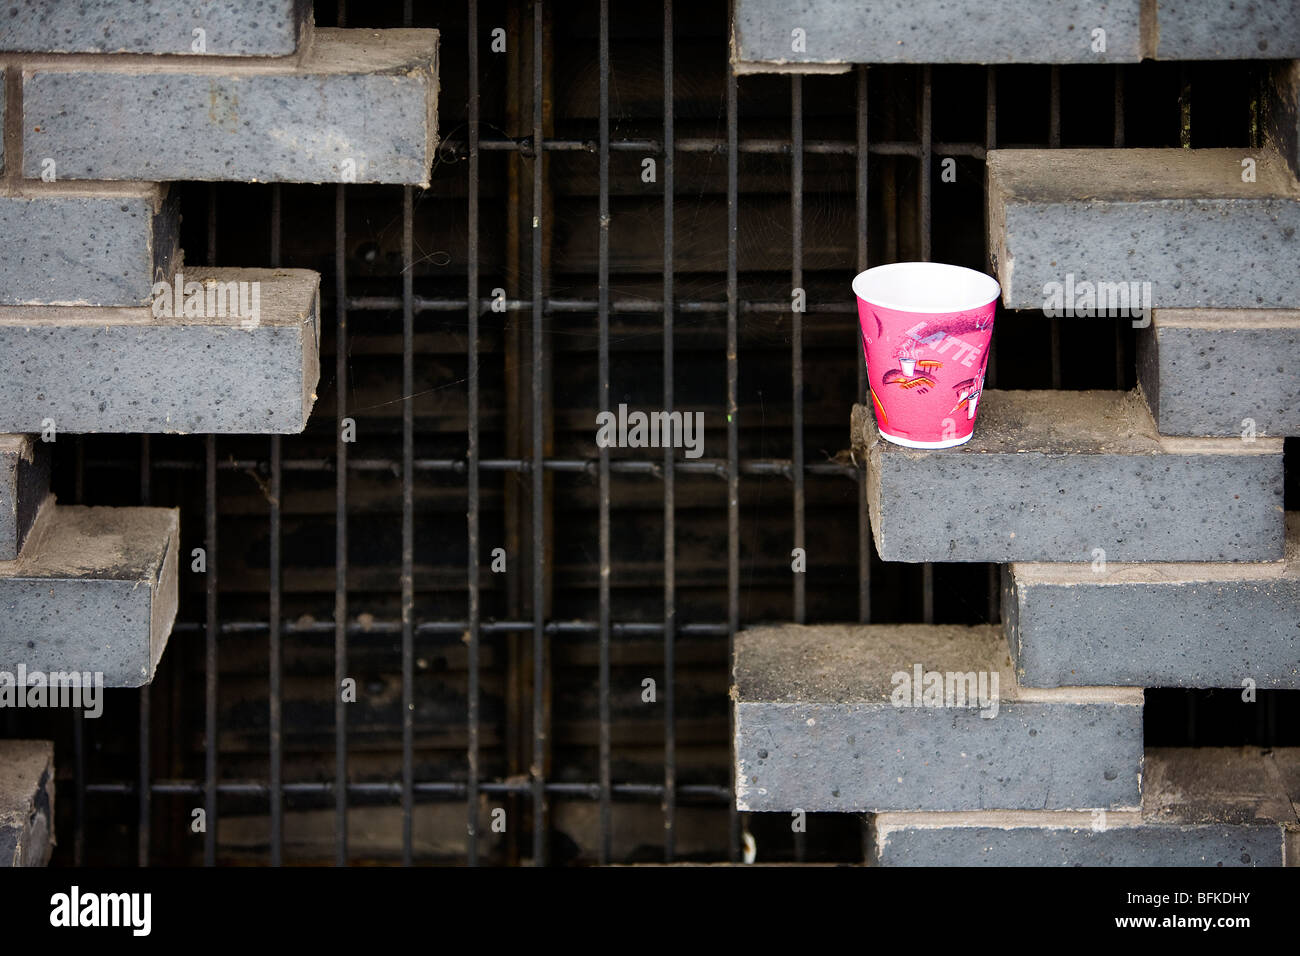 Empty red paper cup sits on the staggered opening in a brick wall at the side of The Lowry building - Stock Image